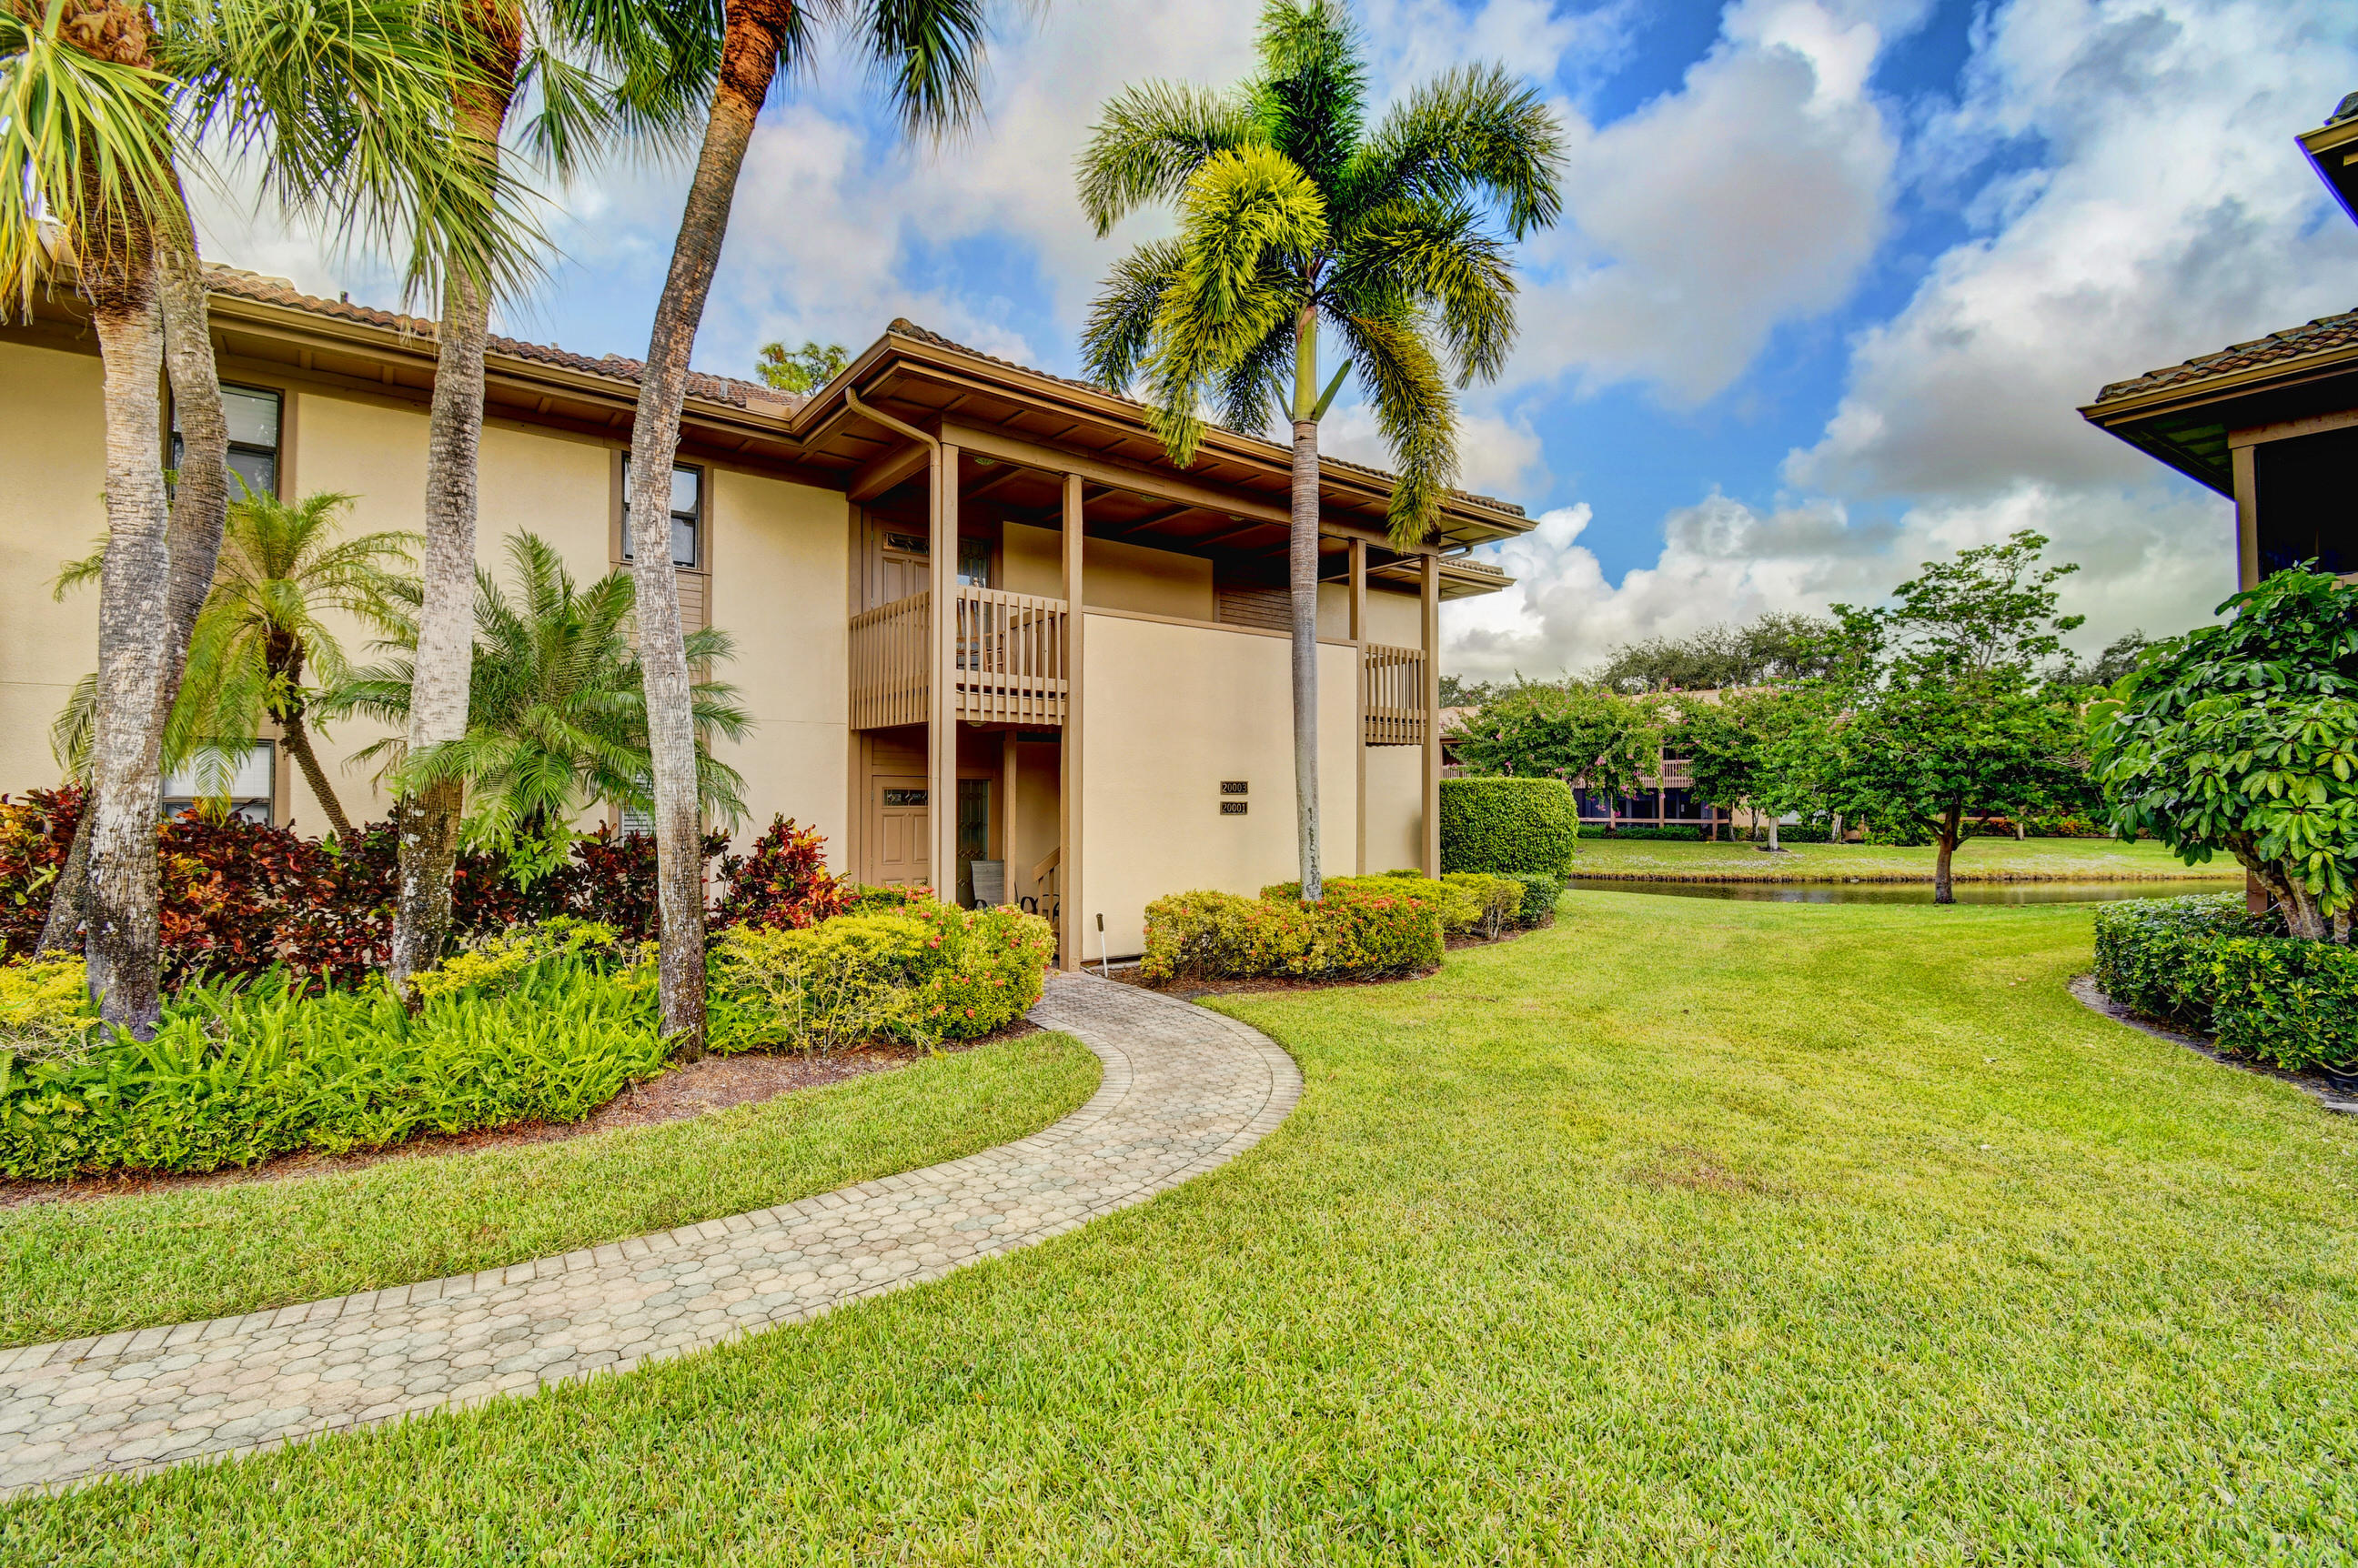 LOVELY 2 BED 2 BATH CONDO WITH FOREVER VIEWS OF GOLF AND WATER. UPDATED FLOORS,NEWER AIR CONDITIONER. GOLF CART PARKING.SIT ON YOUR SCREENED PATIO AND ENJOY THE VIEW AND RELAX.